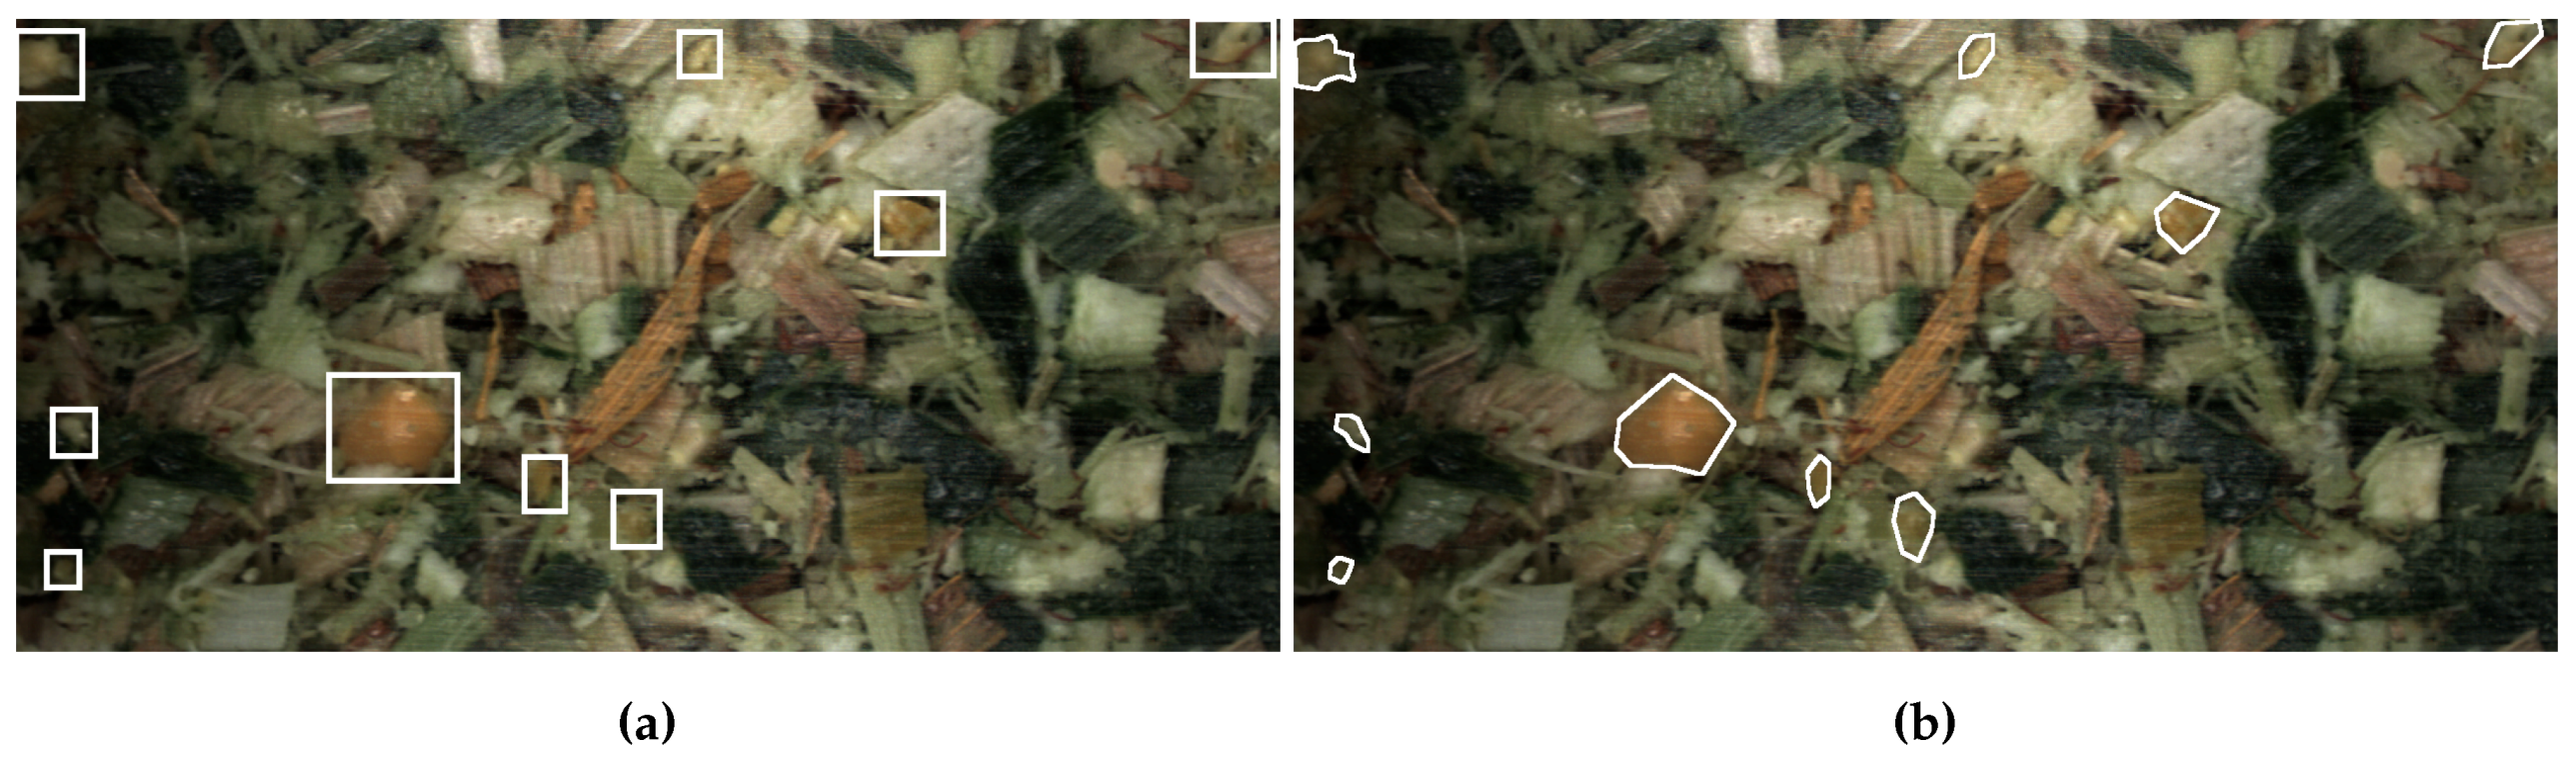 Sensors | Free Full-Text | Maize Silage Kernel Fragment